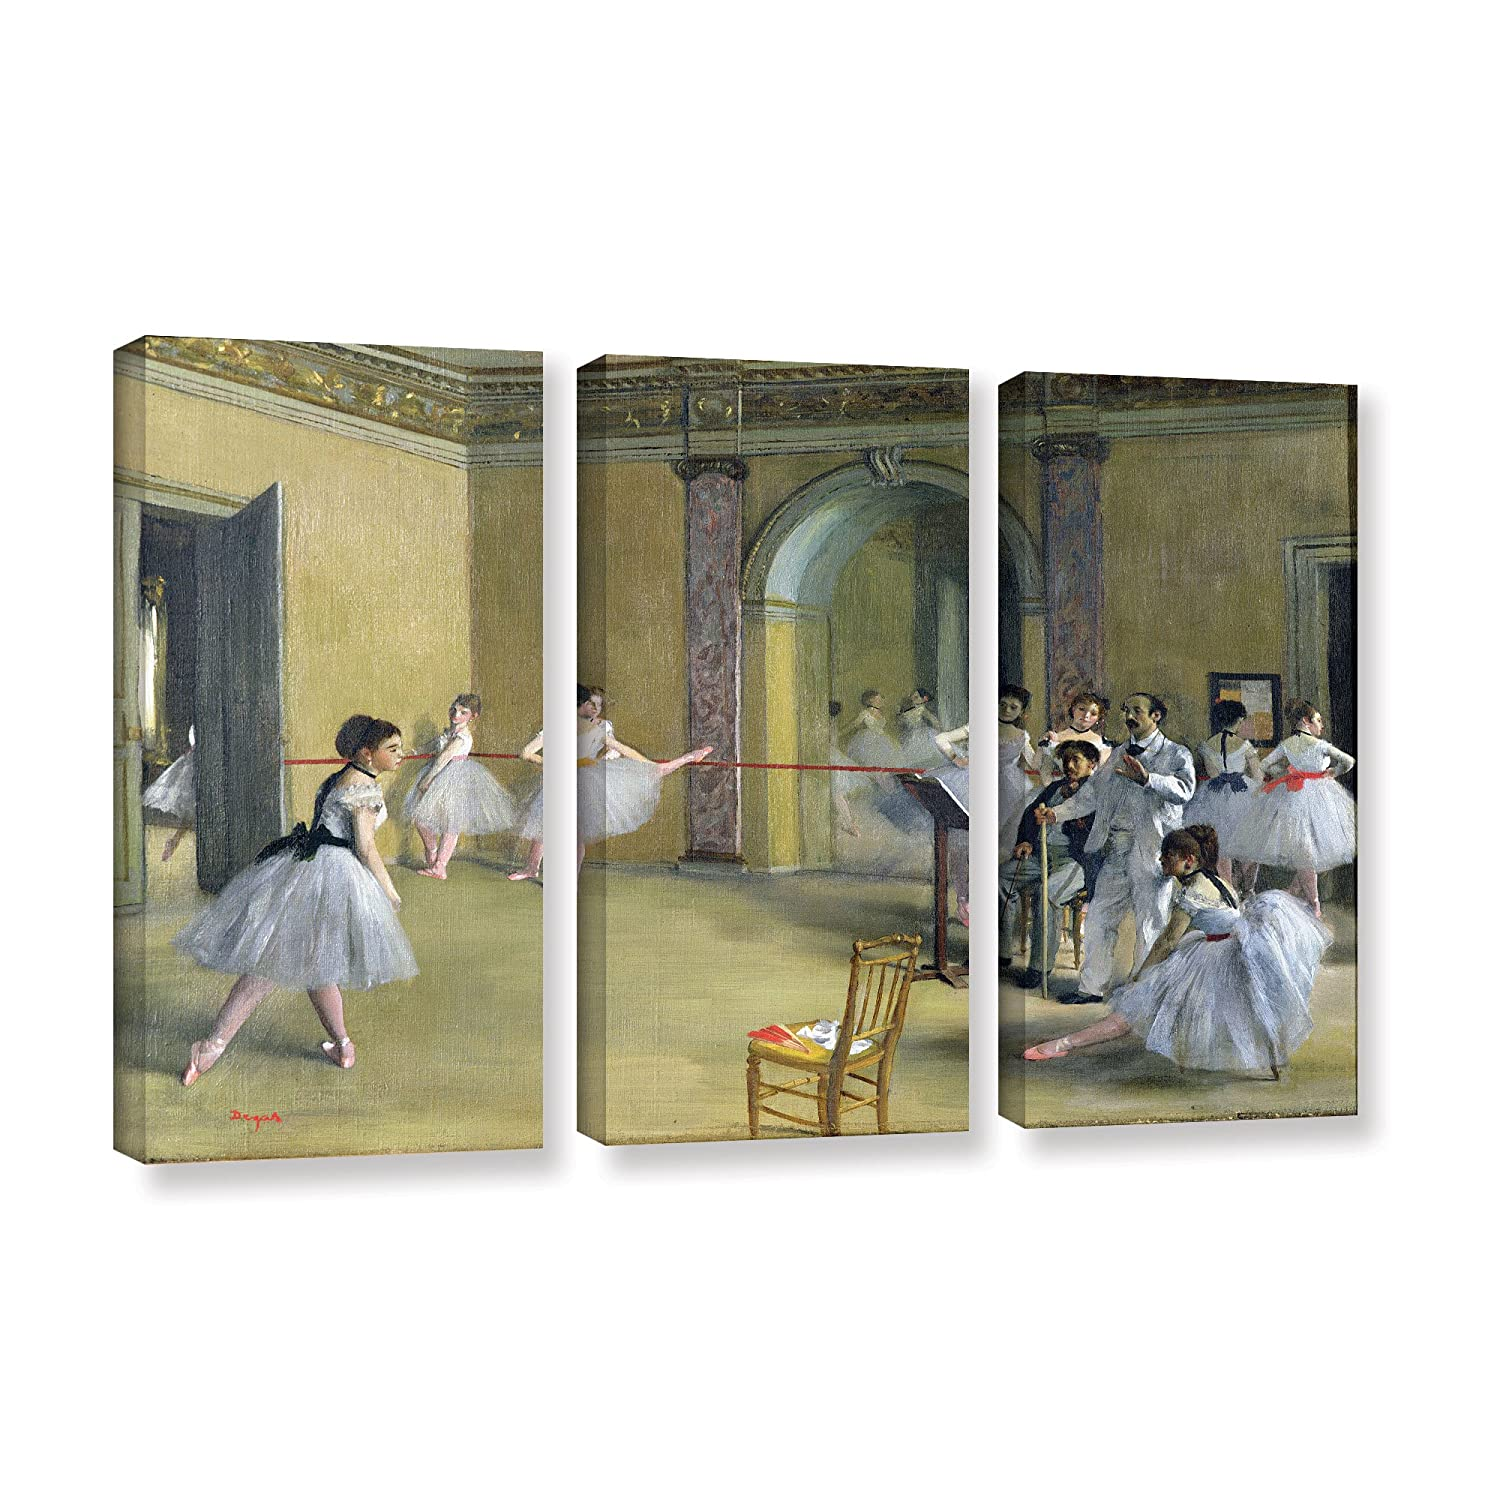 36 x 54 ArtWall Edgar Degass The Dance Foyer at The Opera on The Rue Le Peletier 3 Piece Gallery-Wrapped Canvas Set